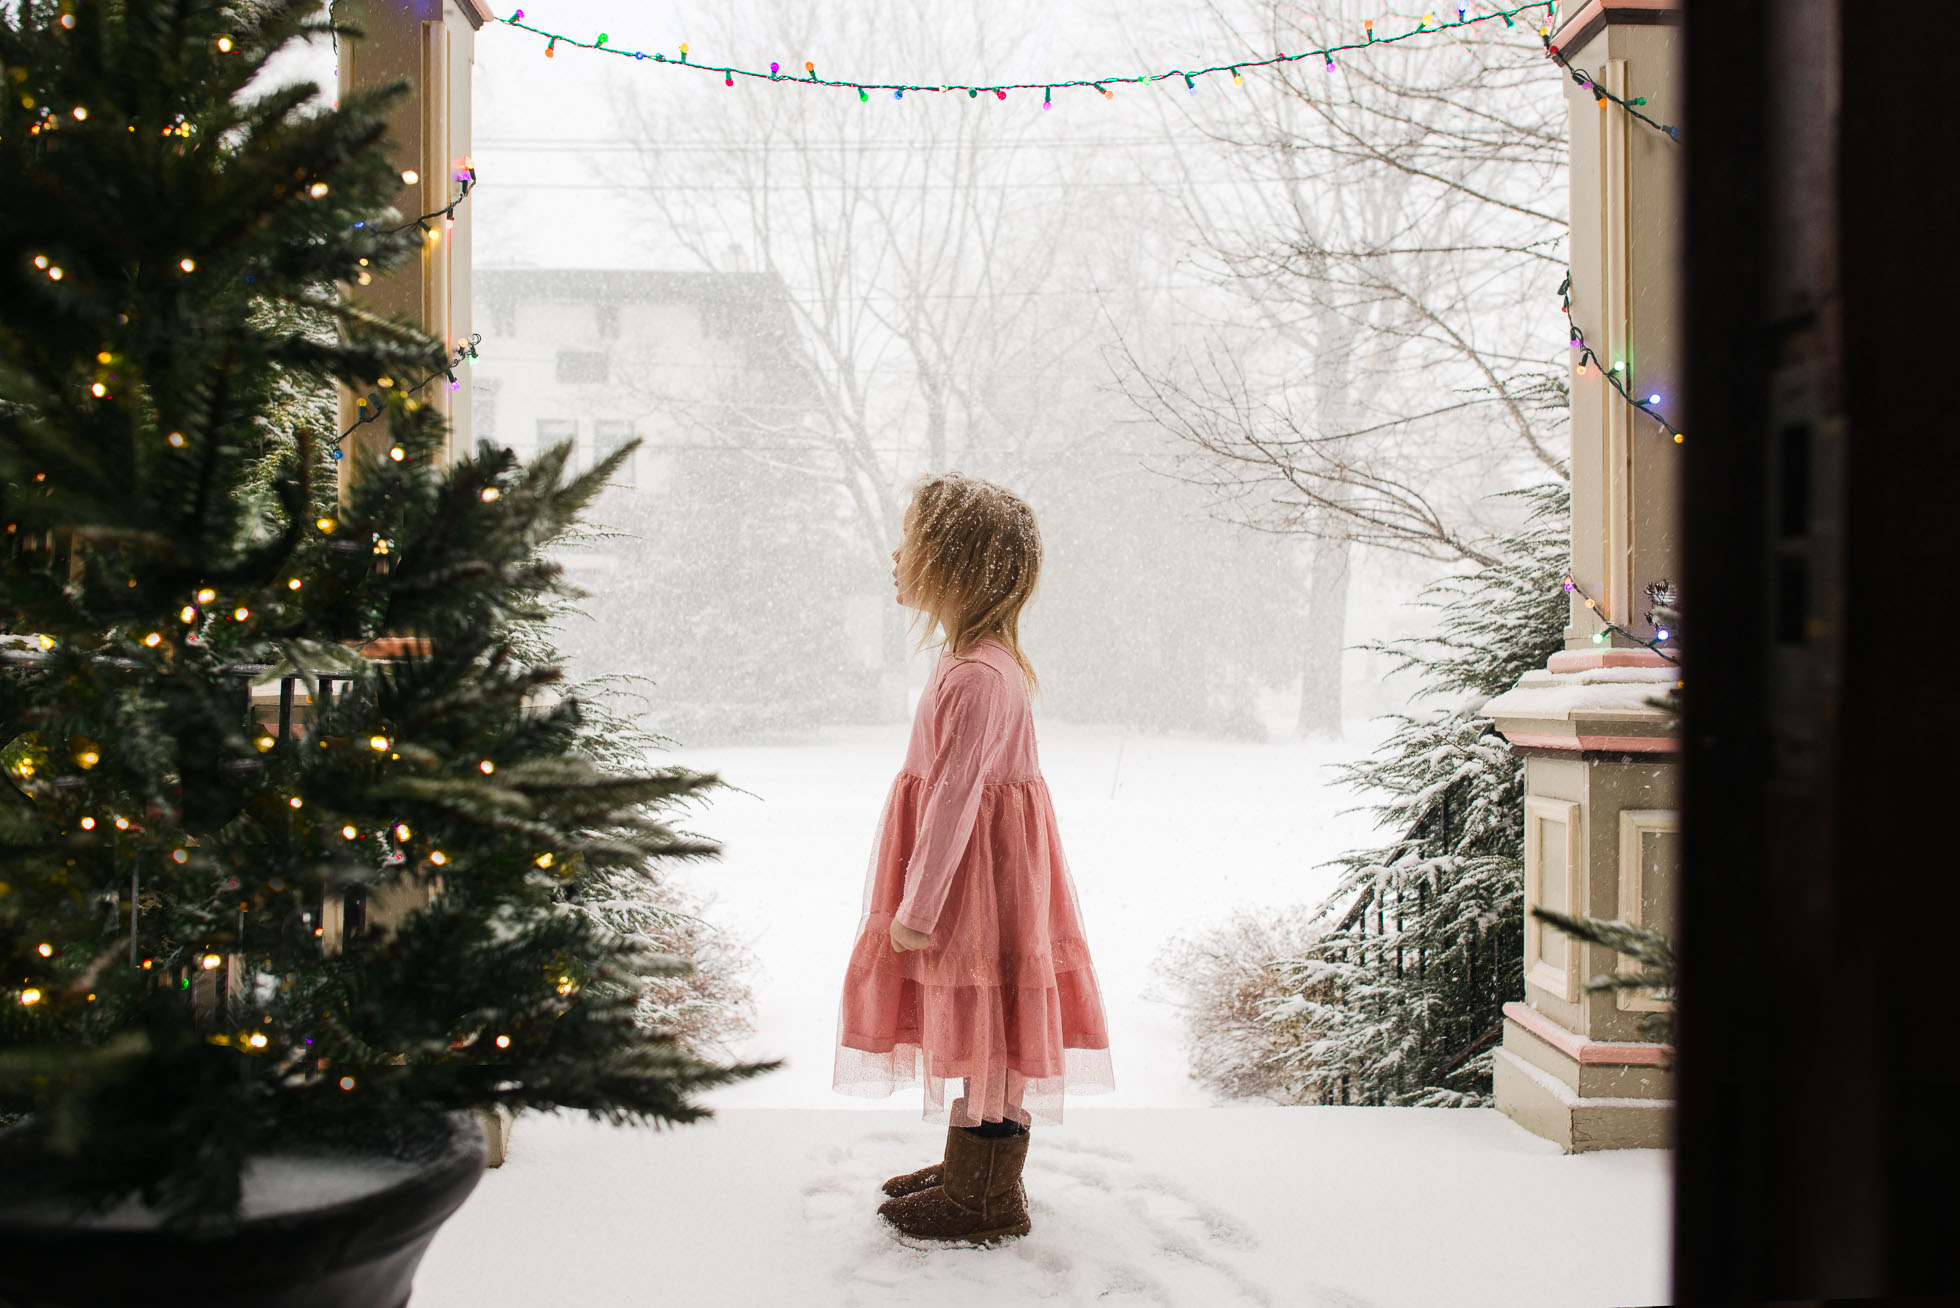 little-girl-in-pink-dress-standing-on-porch-and-watching-snowflakes-during-blizzard-with-christmas-light-by-sarah-wilkerson